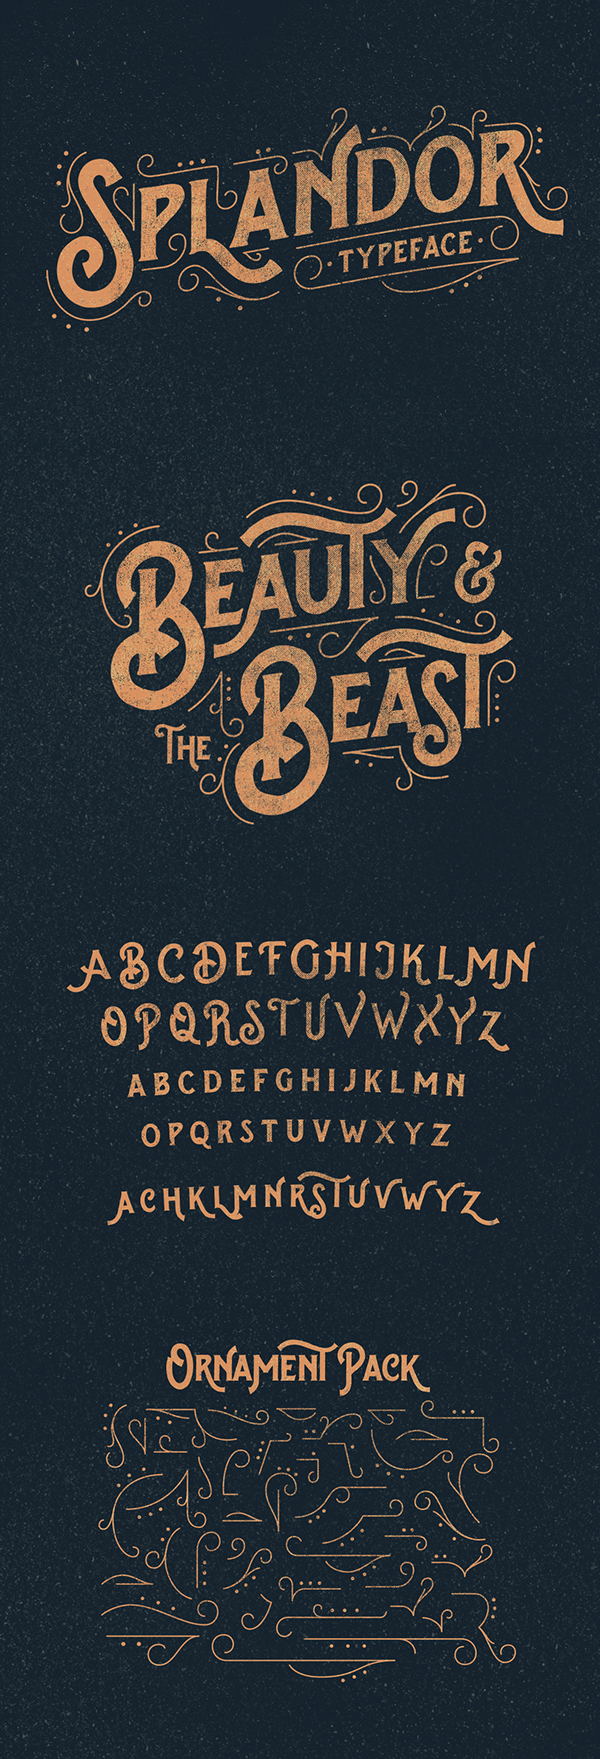 Splandor Typeface by Ilham Herry on Inspirationde